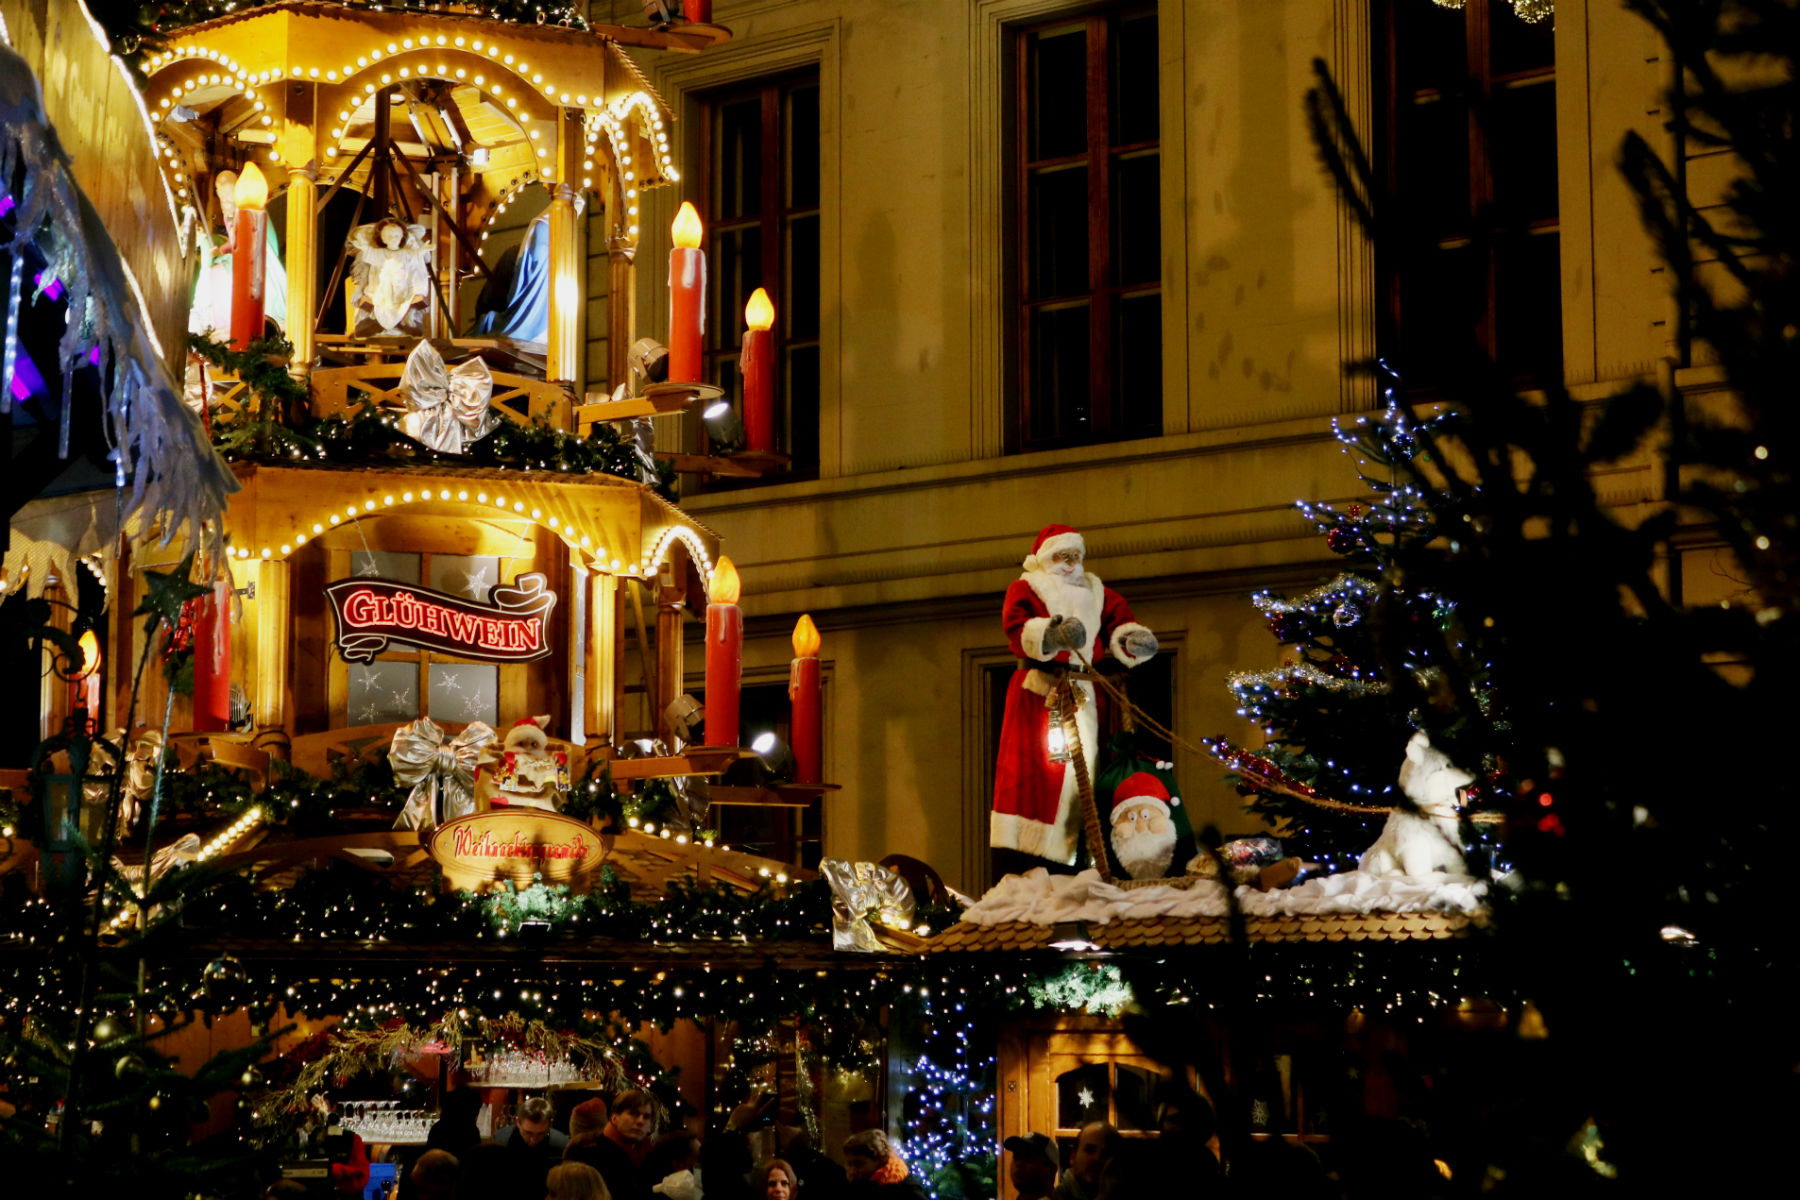 Basel Christmas markets at night